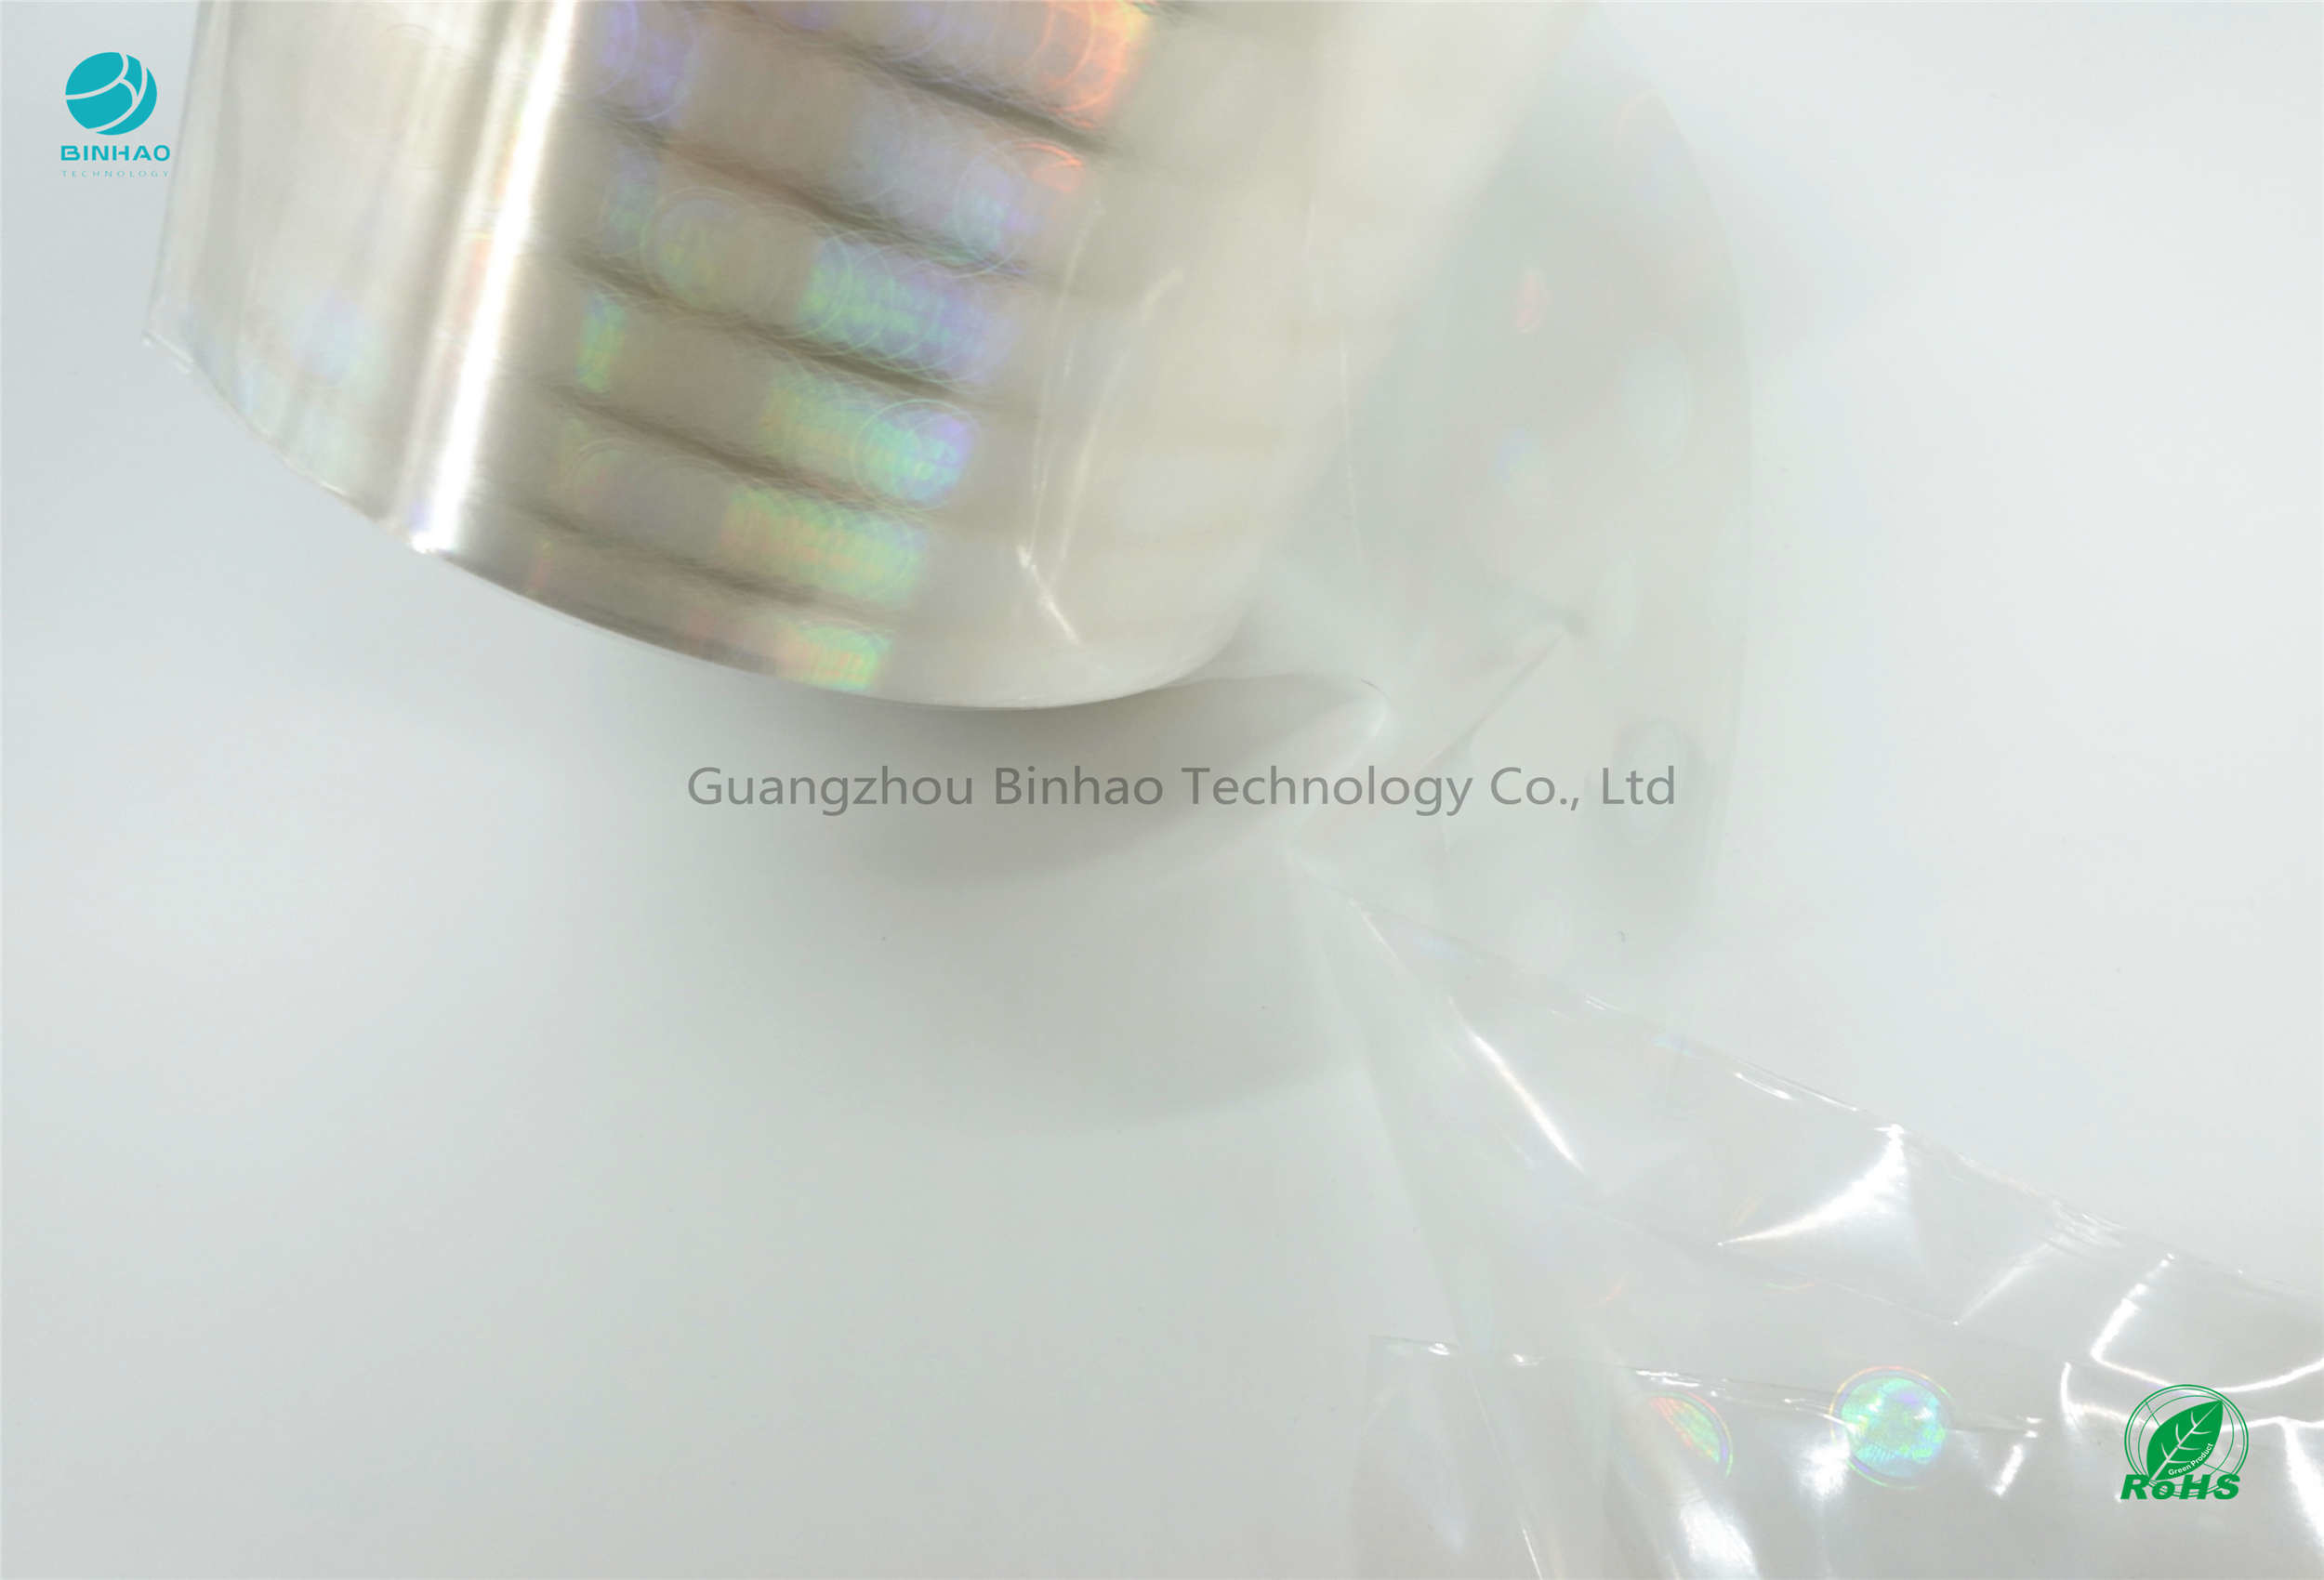 Shine Light Glossy Offset Printing BOPP Film Roll Holographic ID 76 mm